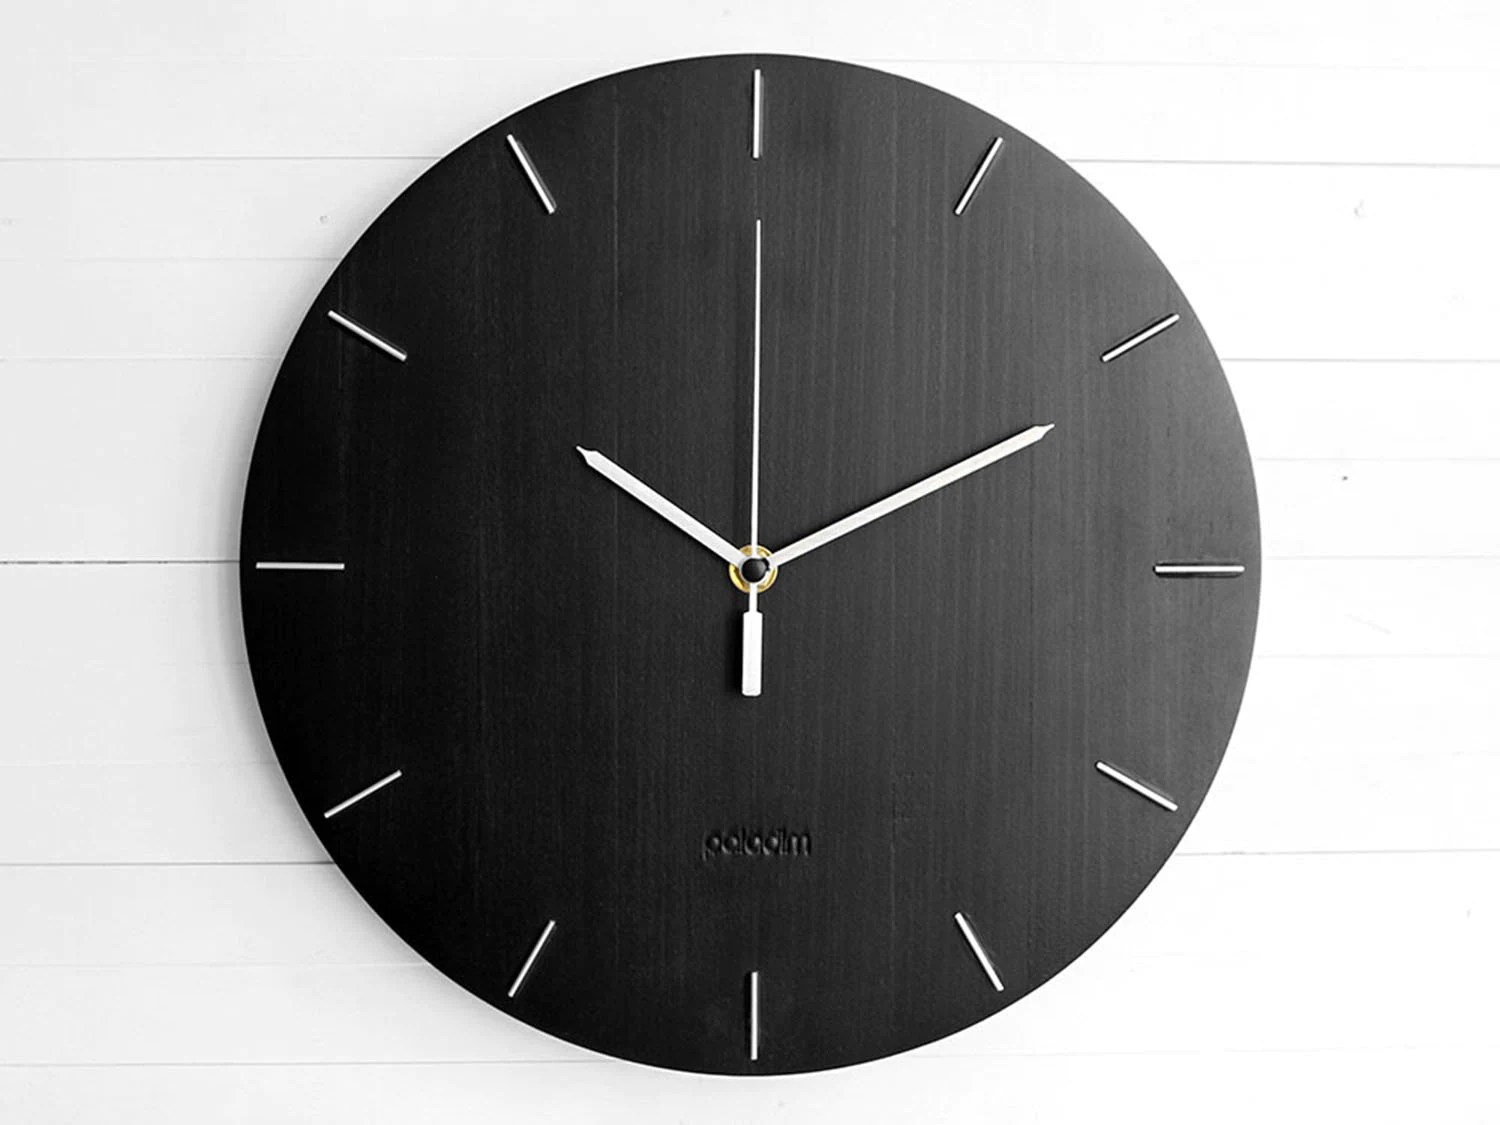 Black Wall Clock Industrial Black Wall Clock The Oval Home Gift Clock Unusual Wall Clock Component Clock Wood Clock Abstract Style Industrial Decor